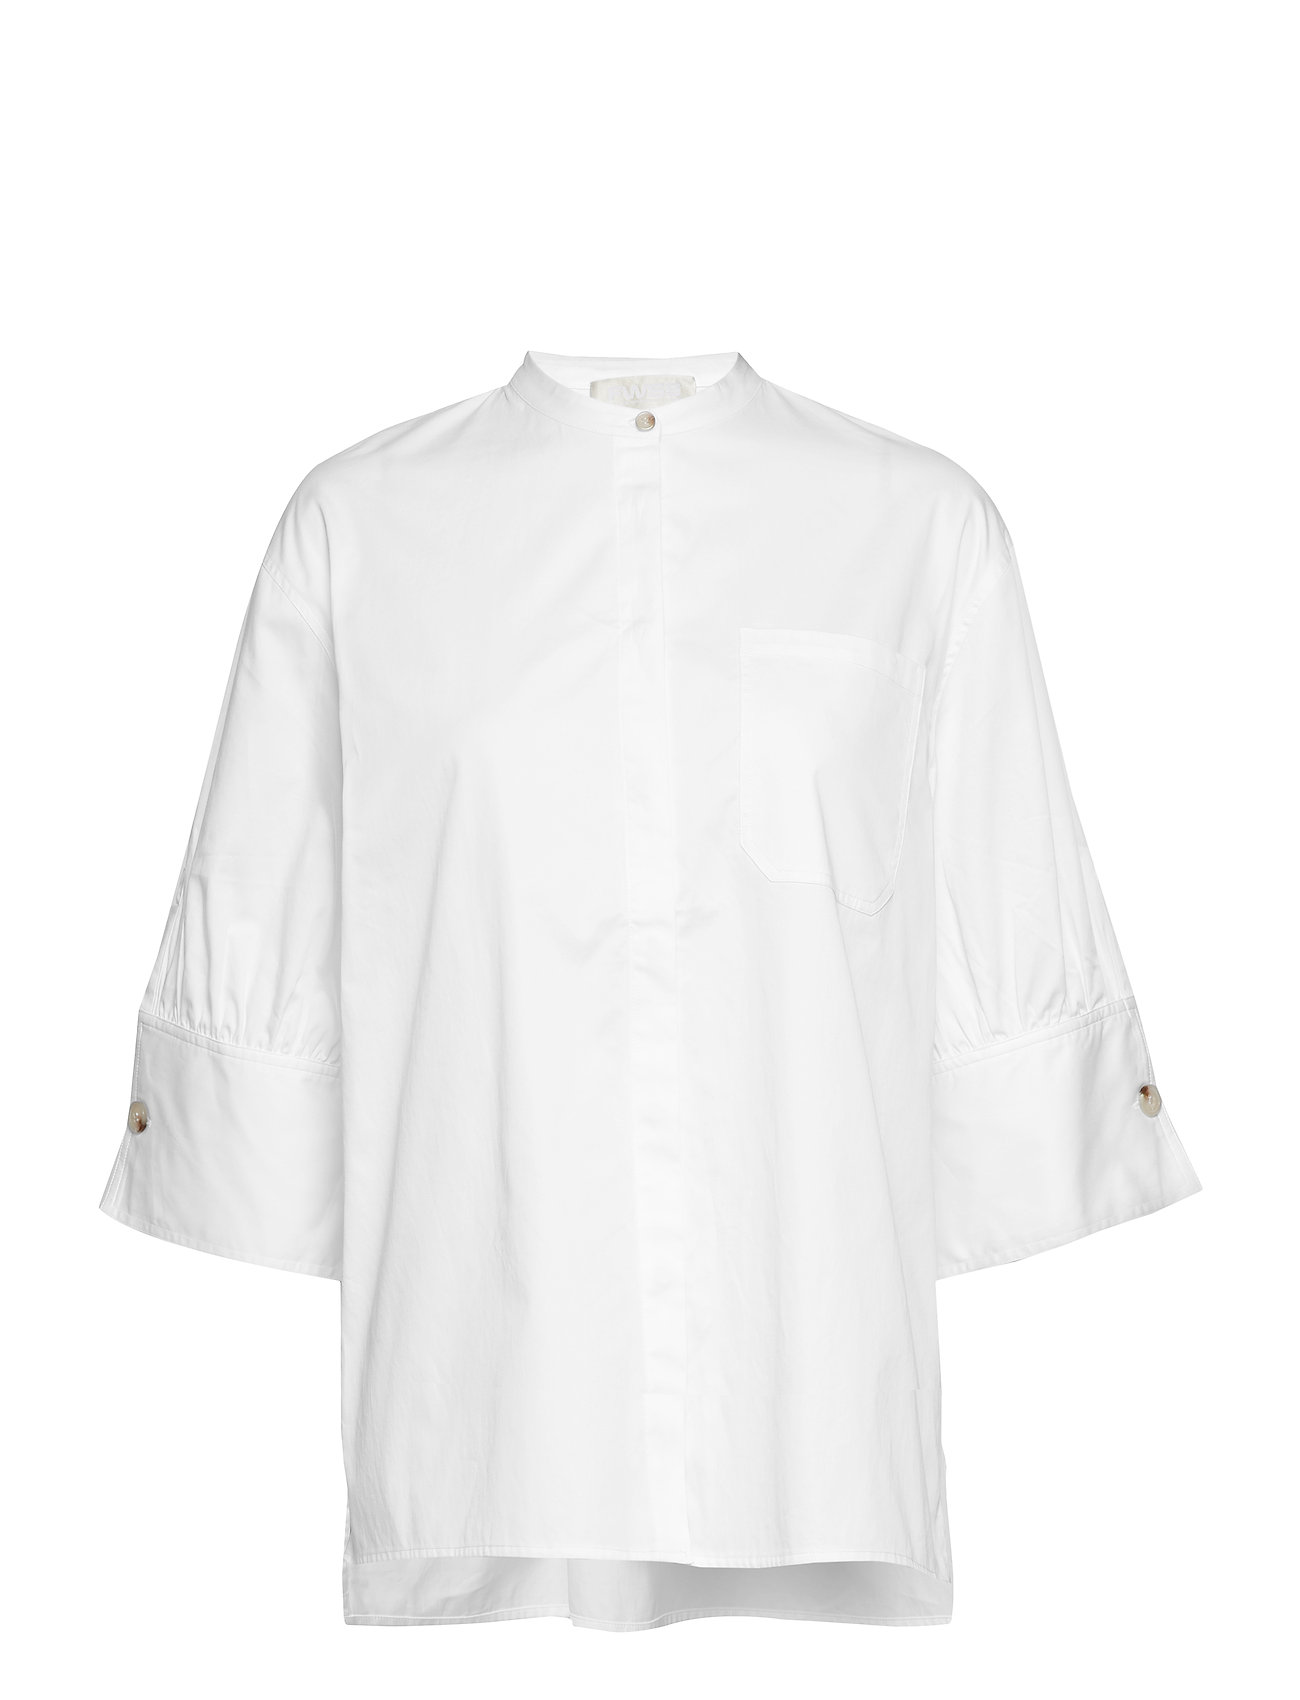 Fall Winter Spring Summer Oline - BRIGHT WHITE